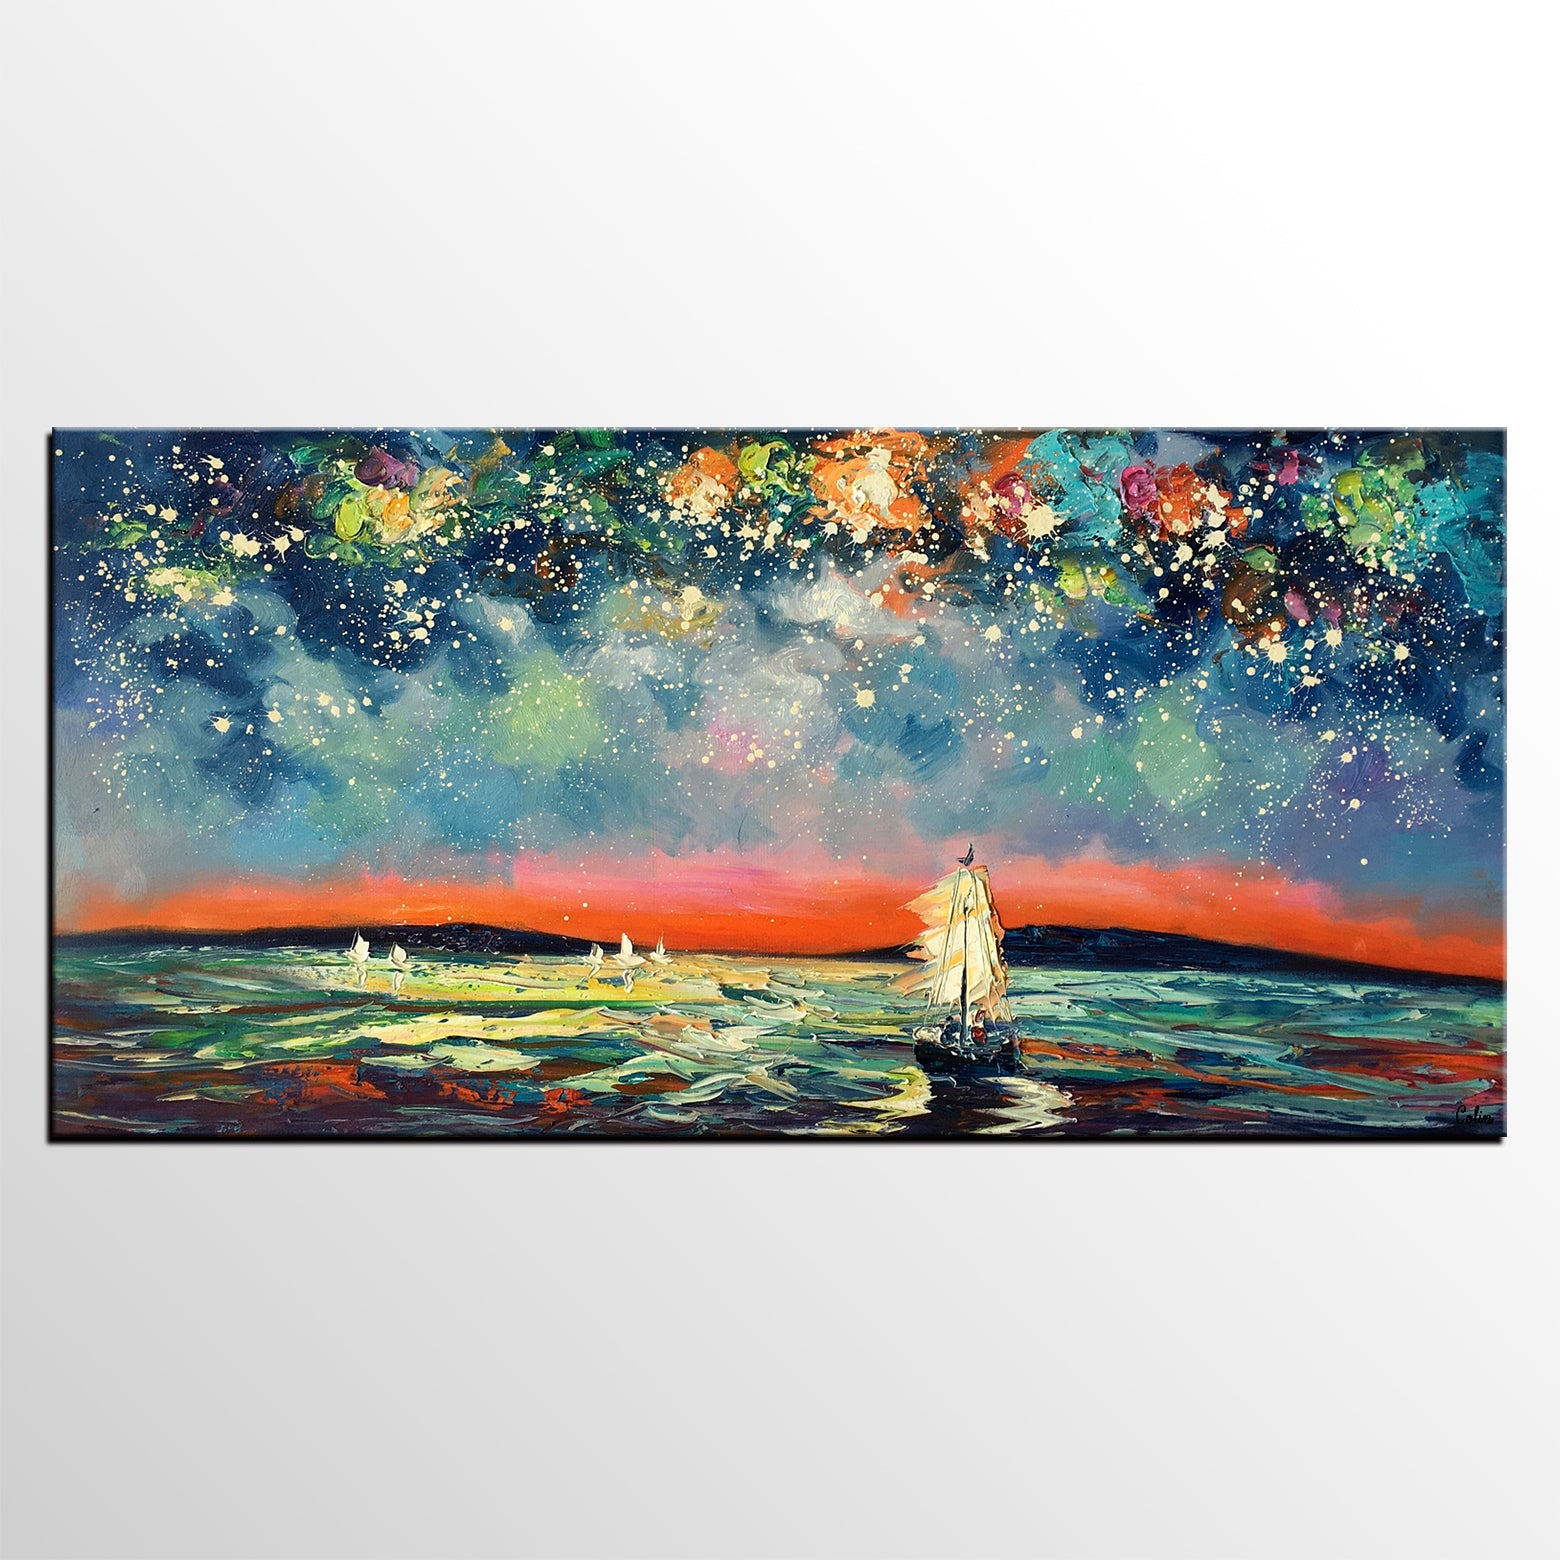 Sail Boat under Starry Night Sky Painting, Landscape Painting, Original Artwork, Custom Extra Large Canvas Painting-artworkcanvas